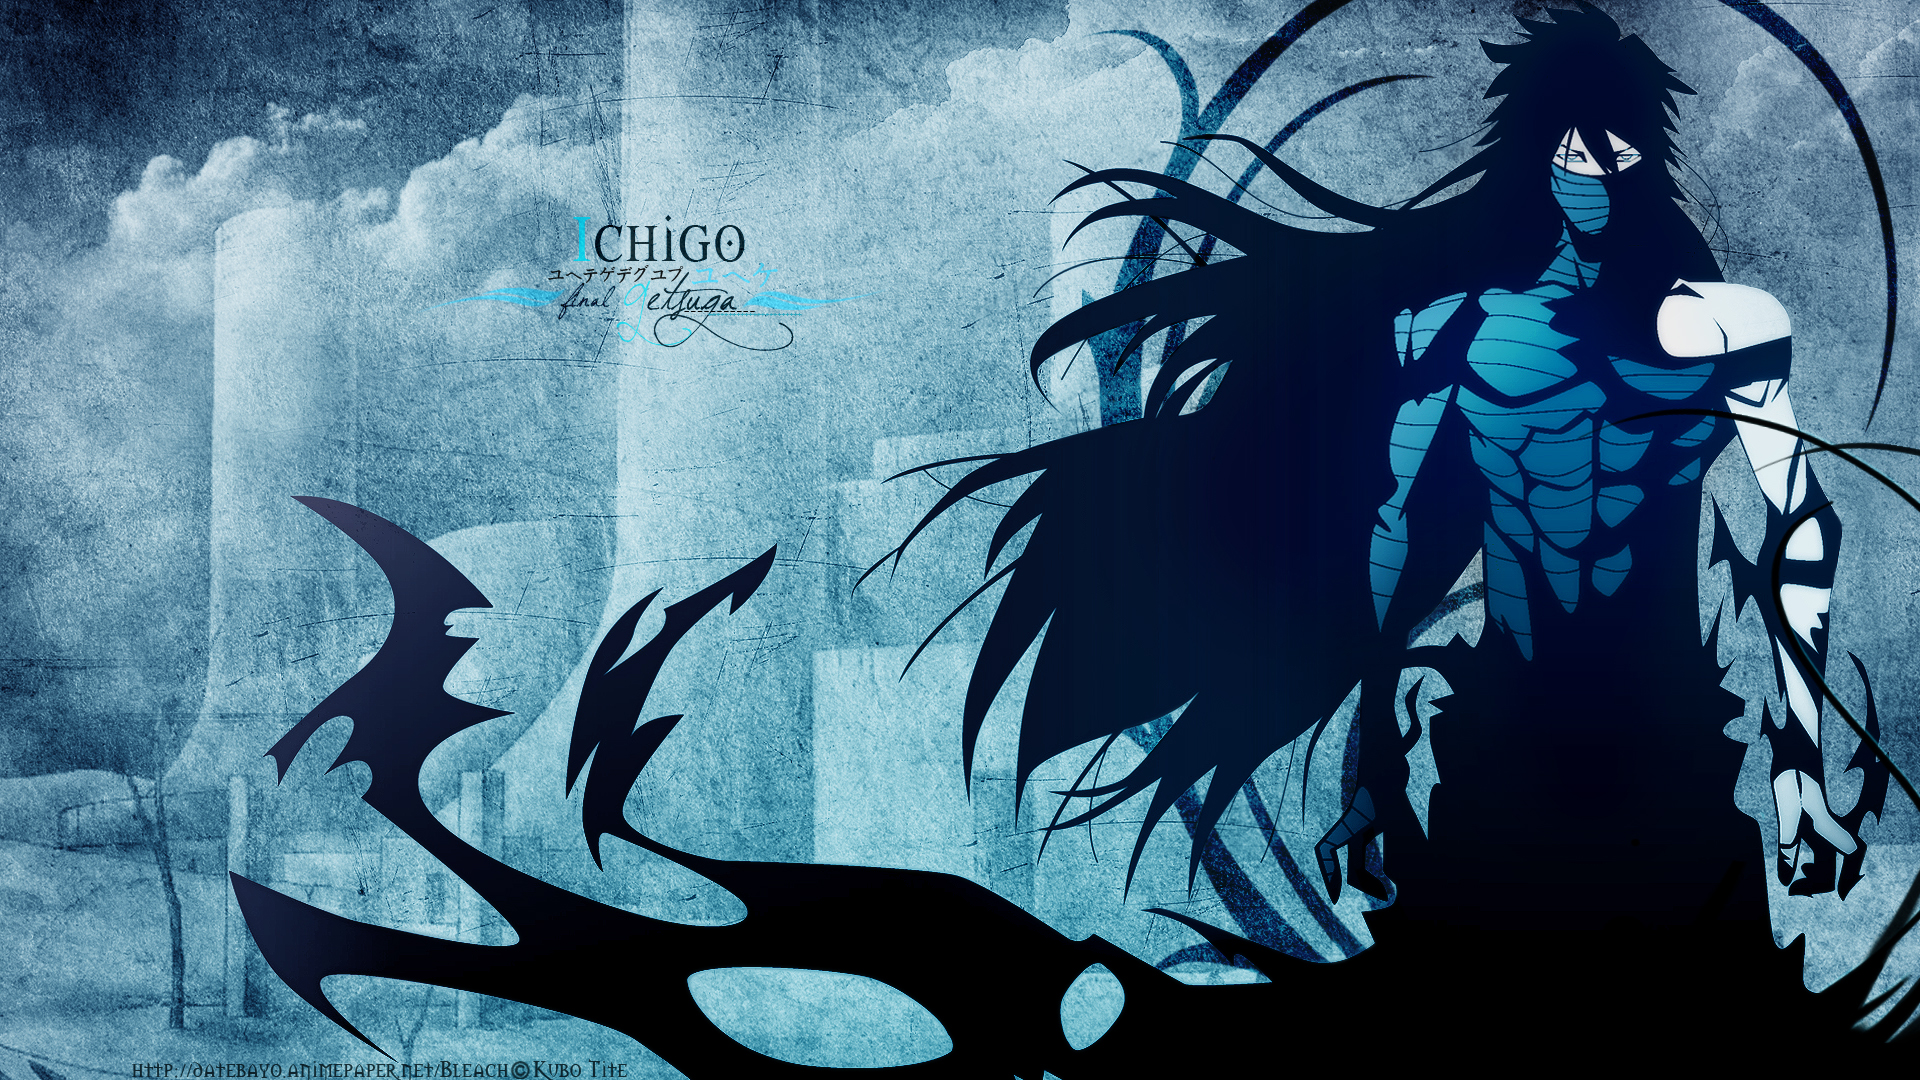 bleach wallpaper 1920 x 1080 - photo #37